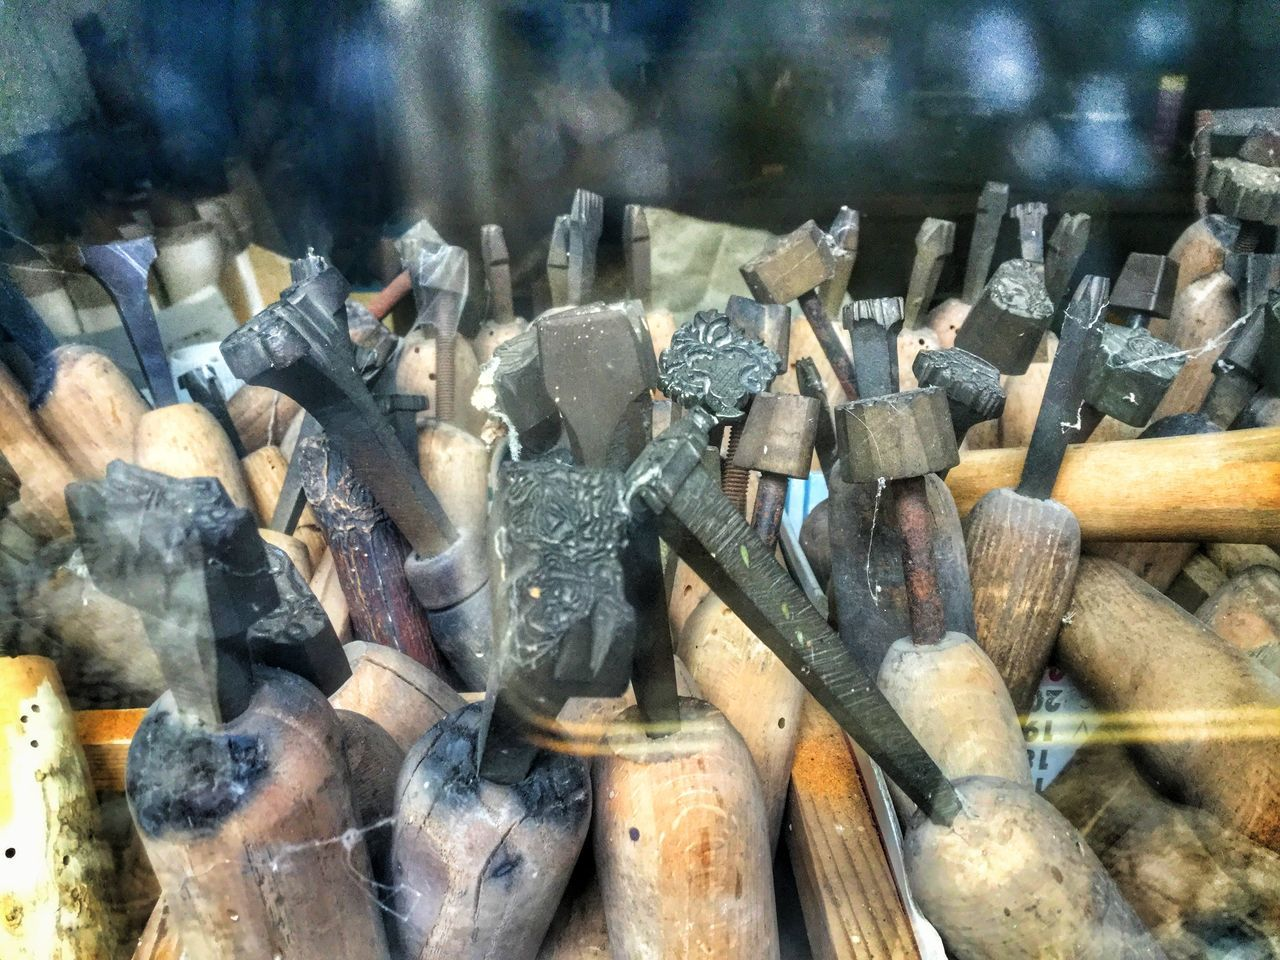 no people, work tool, large group of objects, indoors, close-up, day, metal industry, axe